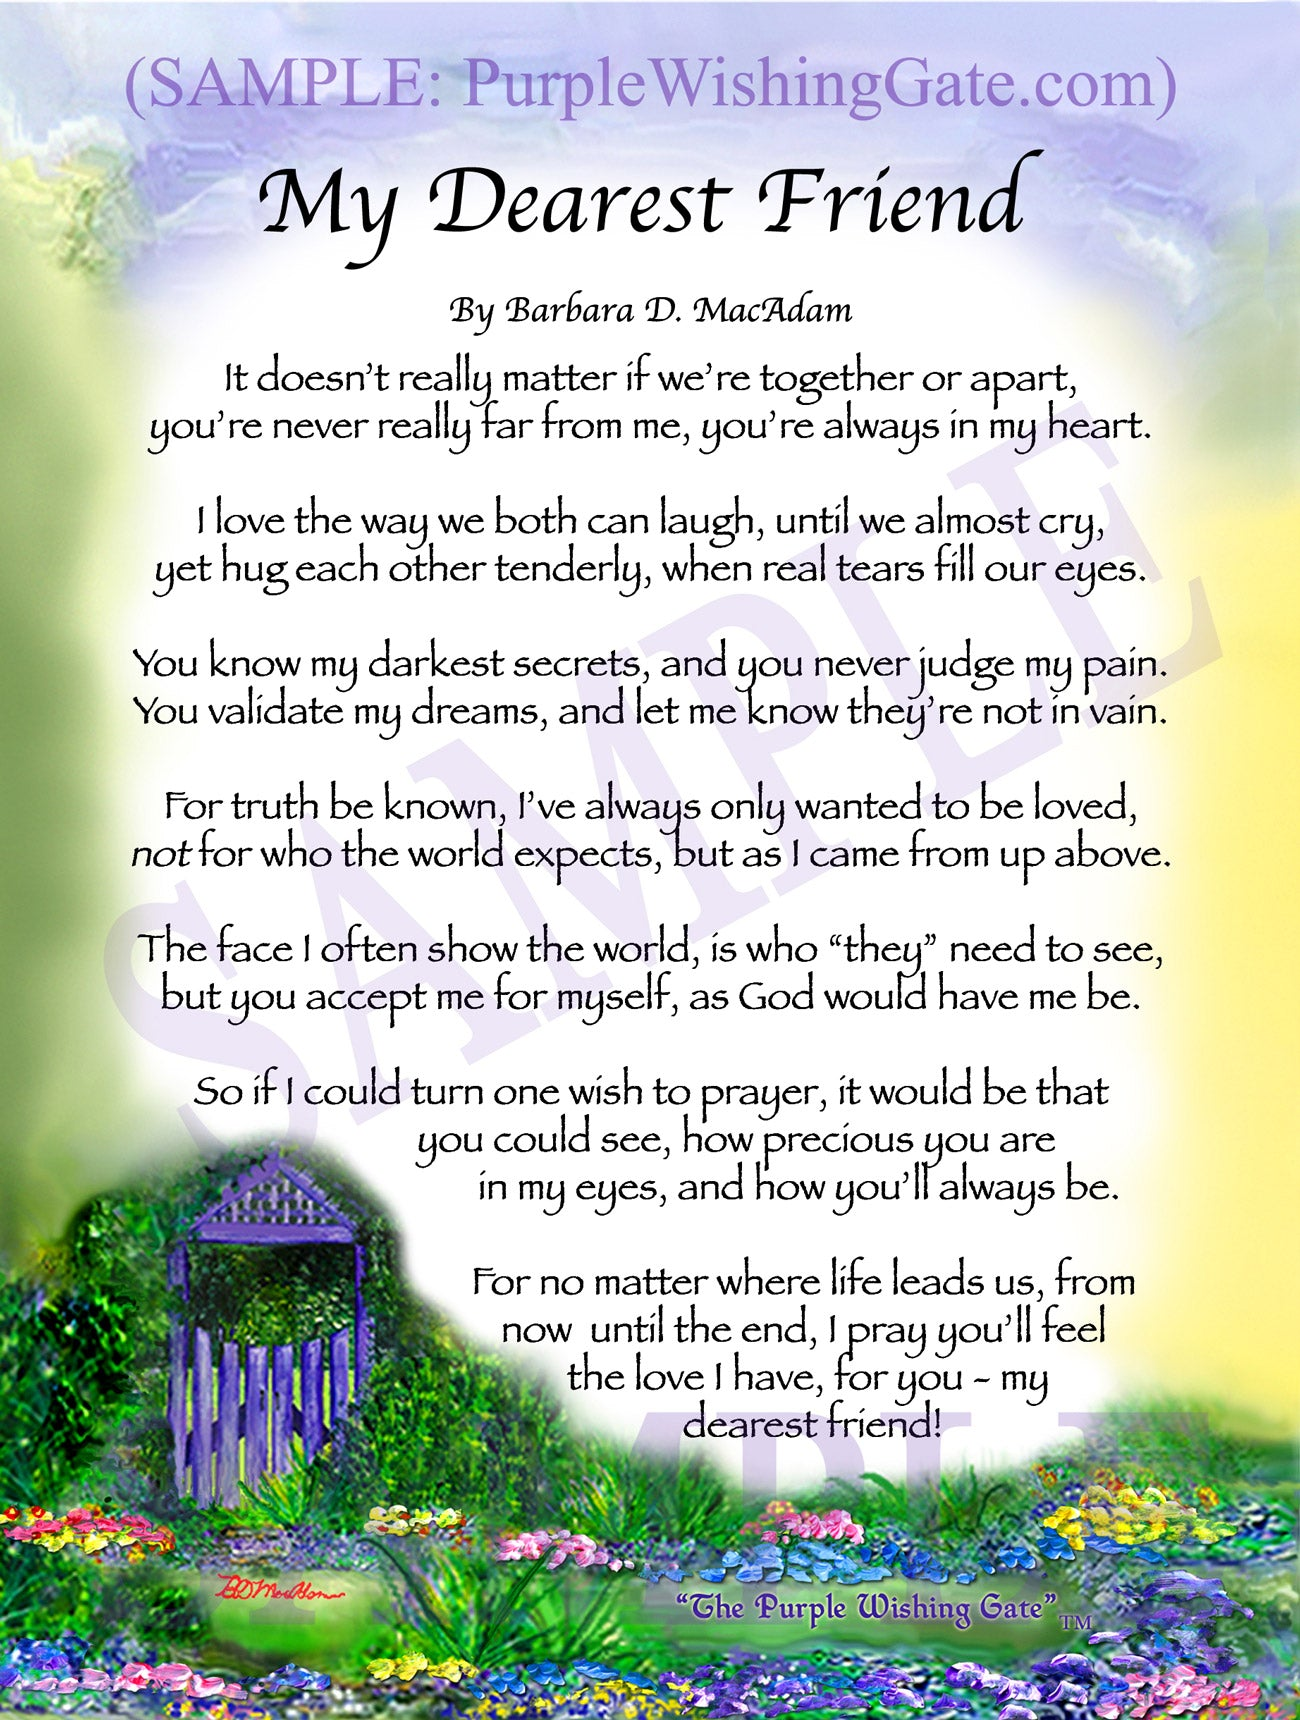 My Dearest Friend - Friendship Gift - PurpleWishingGate.com